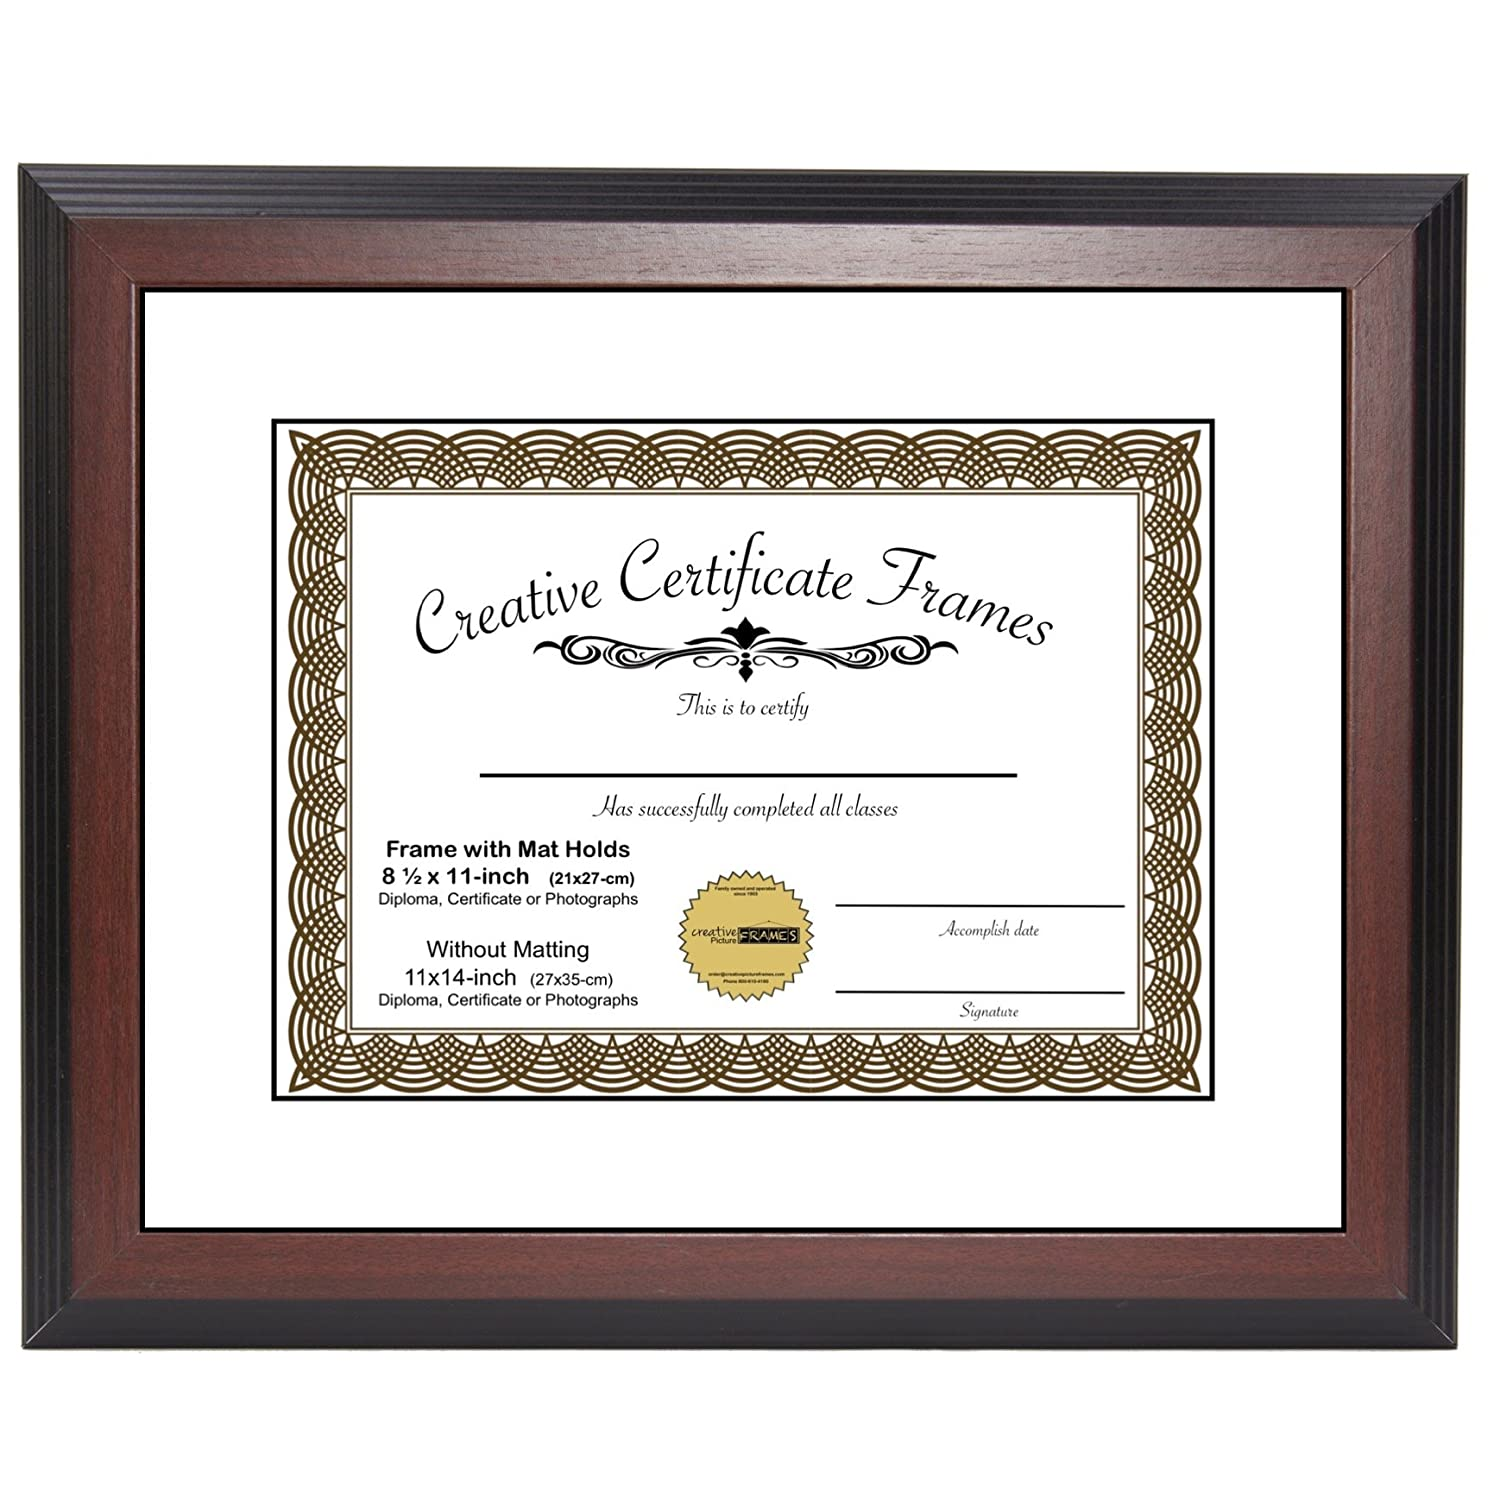 Includes UV Glazed Glass and Anti Aging Liner NBG Home RW0761BG Nielsen Bainbridge Artcare 8x10 Tuscan Collection Black and Gold Archival Wood Frame With Single Warm White Mat For 5x7 Image